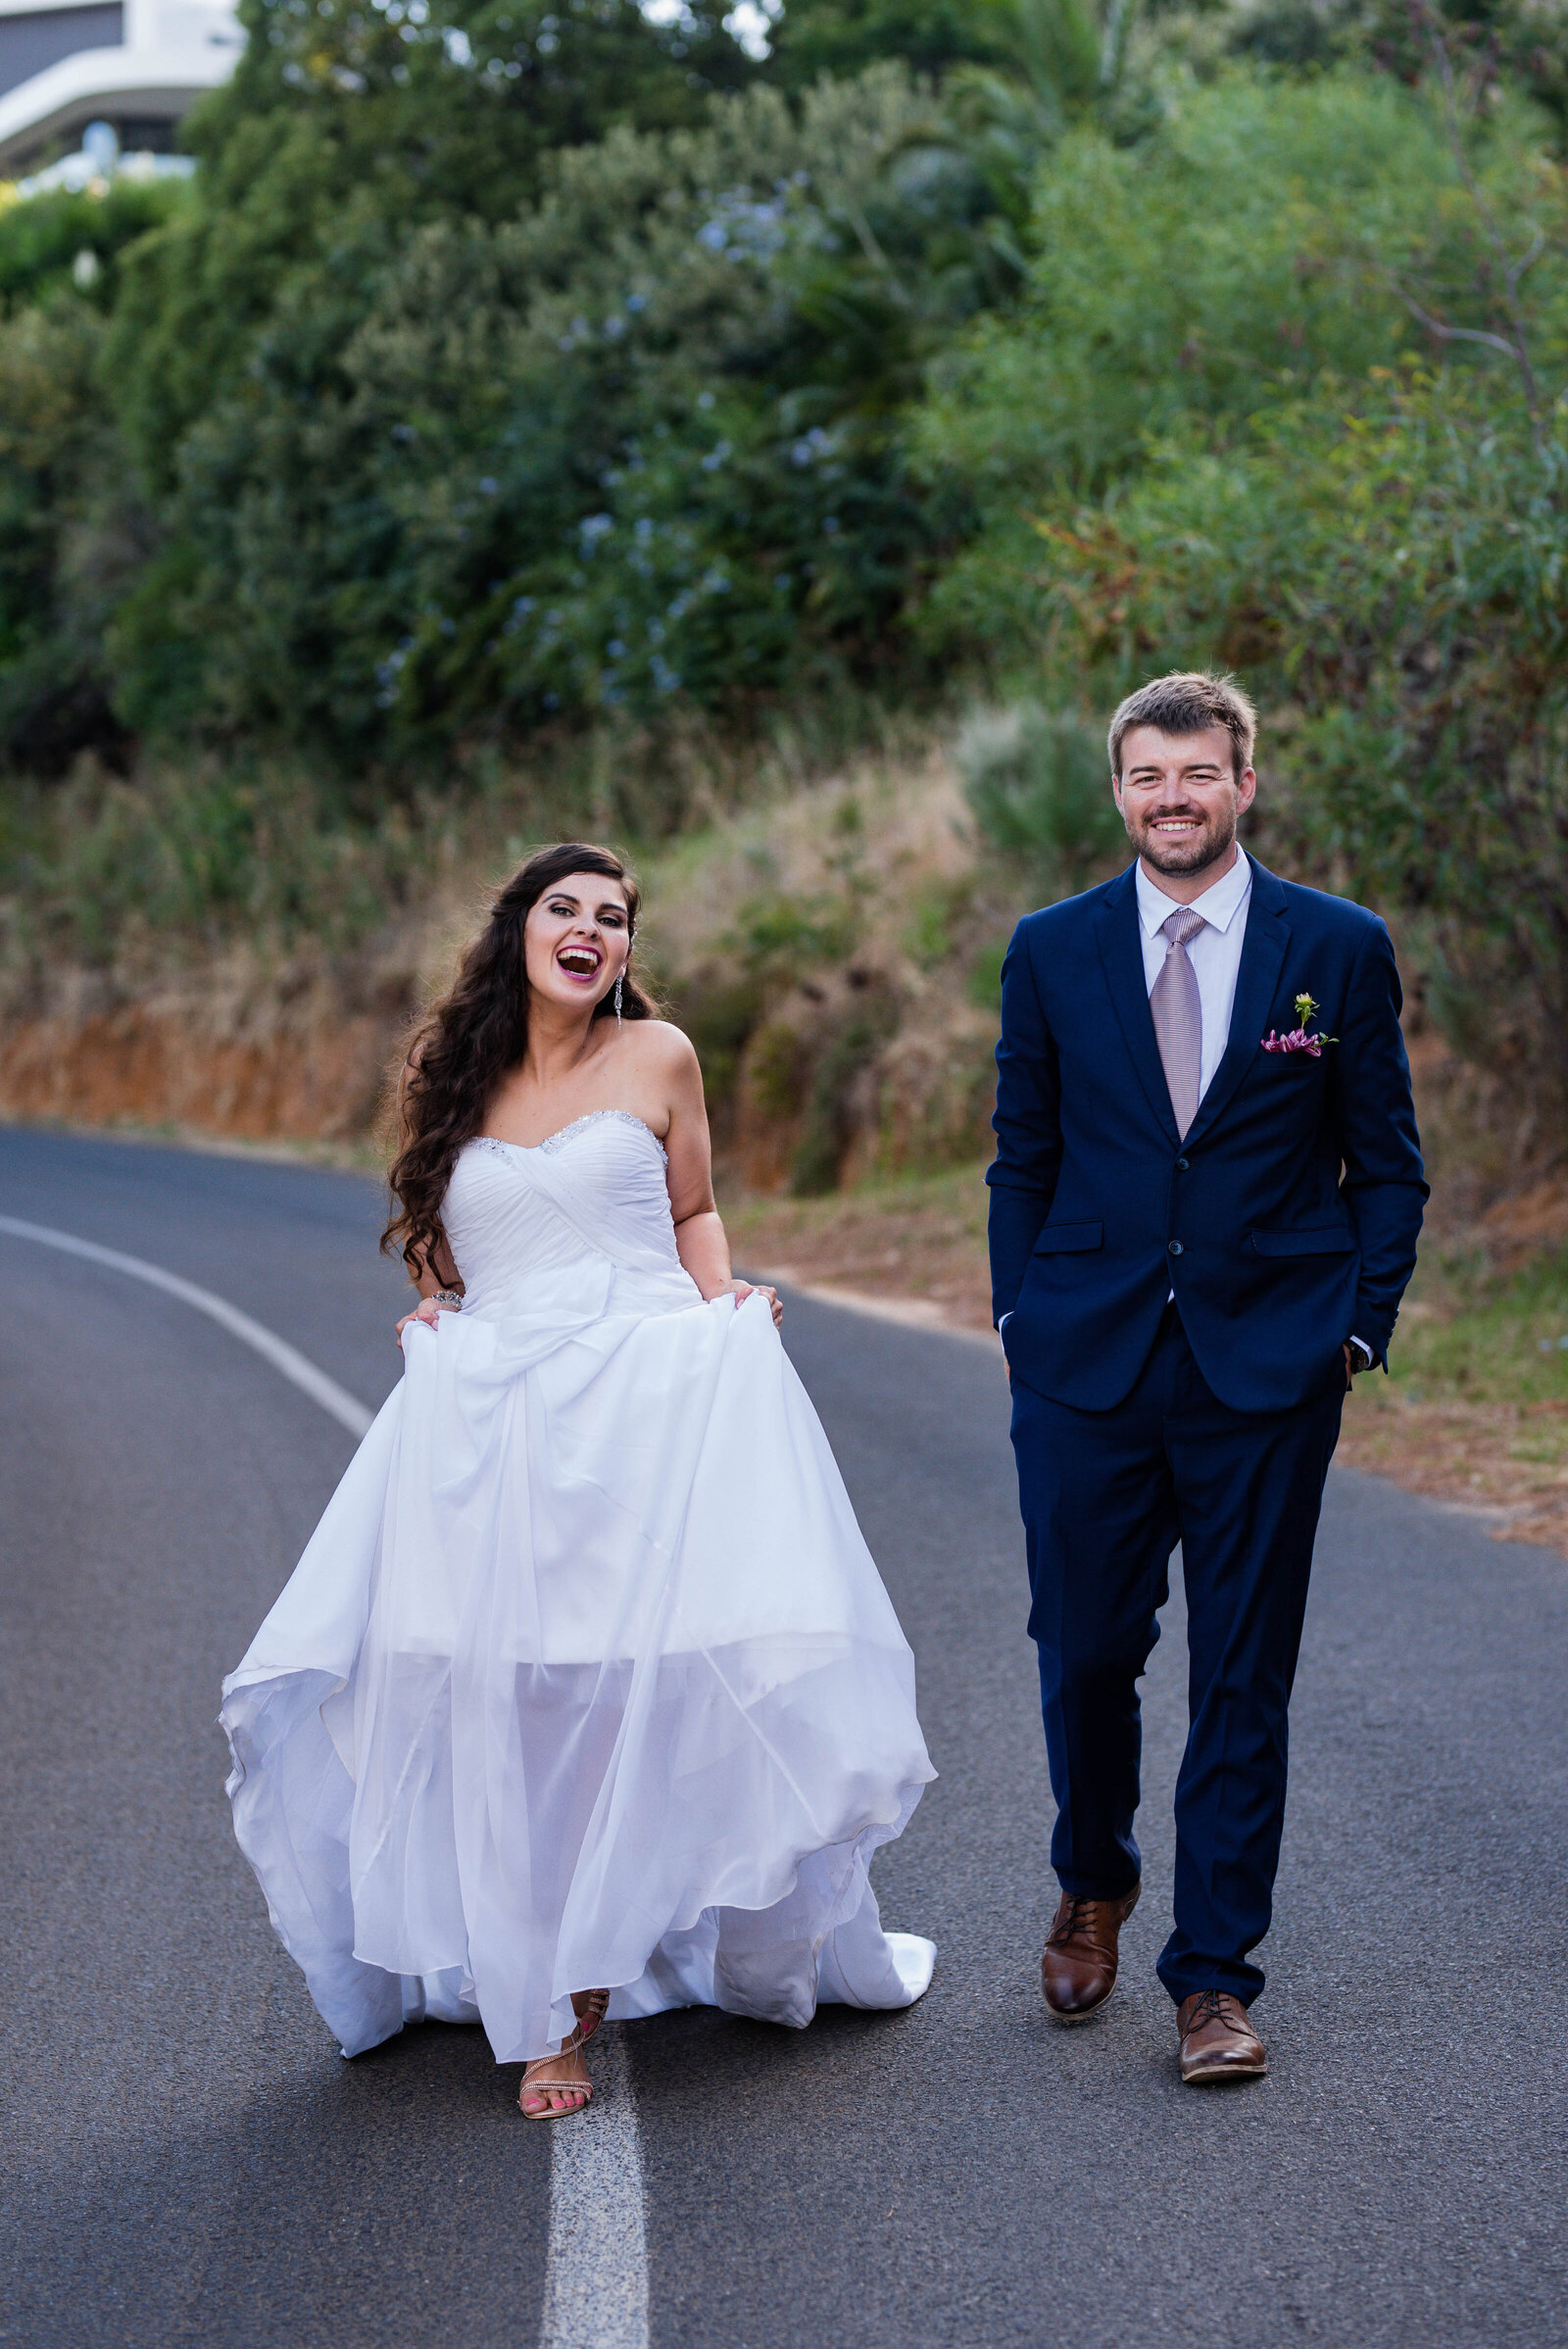 Wedding Photographer + Cape Town venue +Elri Photography+ Weddingdress (12)